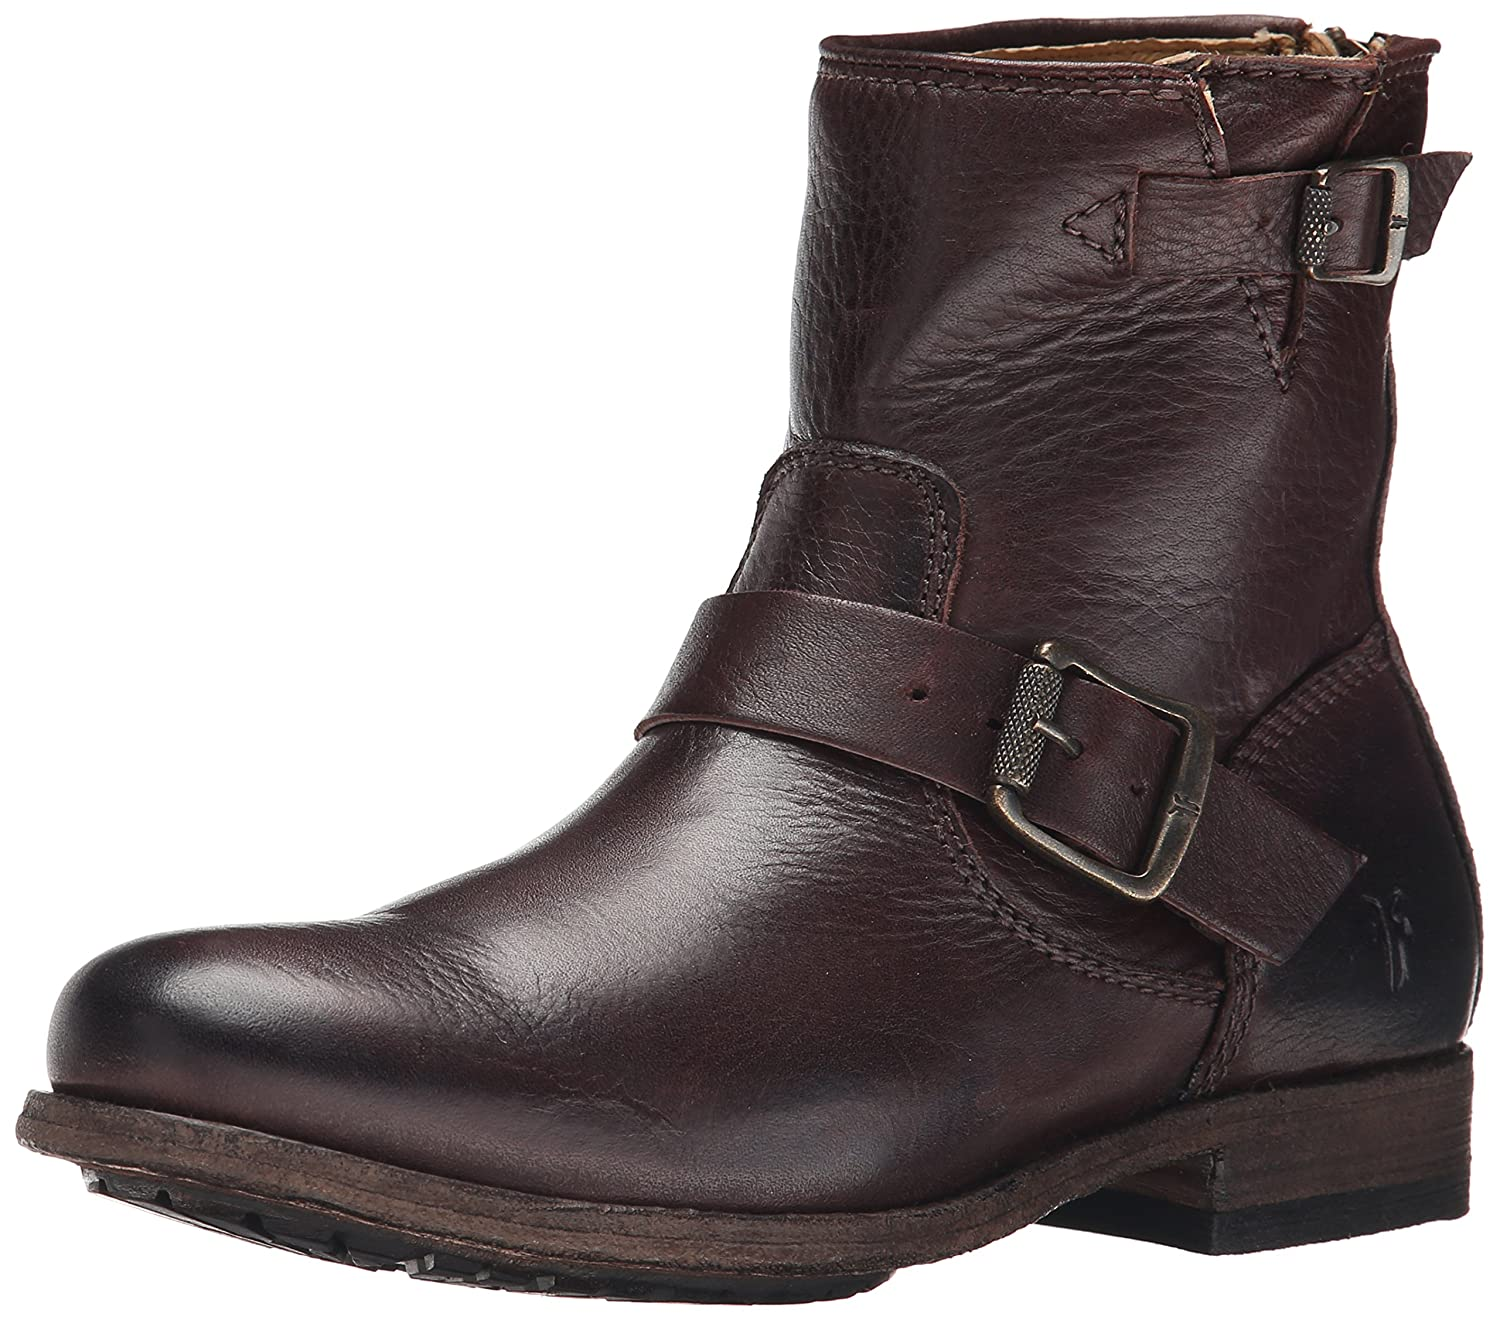 Dark marron FRYE Wohommes Tyler-SVL Engineer démarrage 6.5 B(M) US